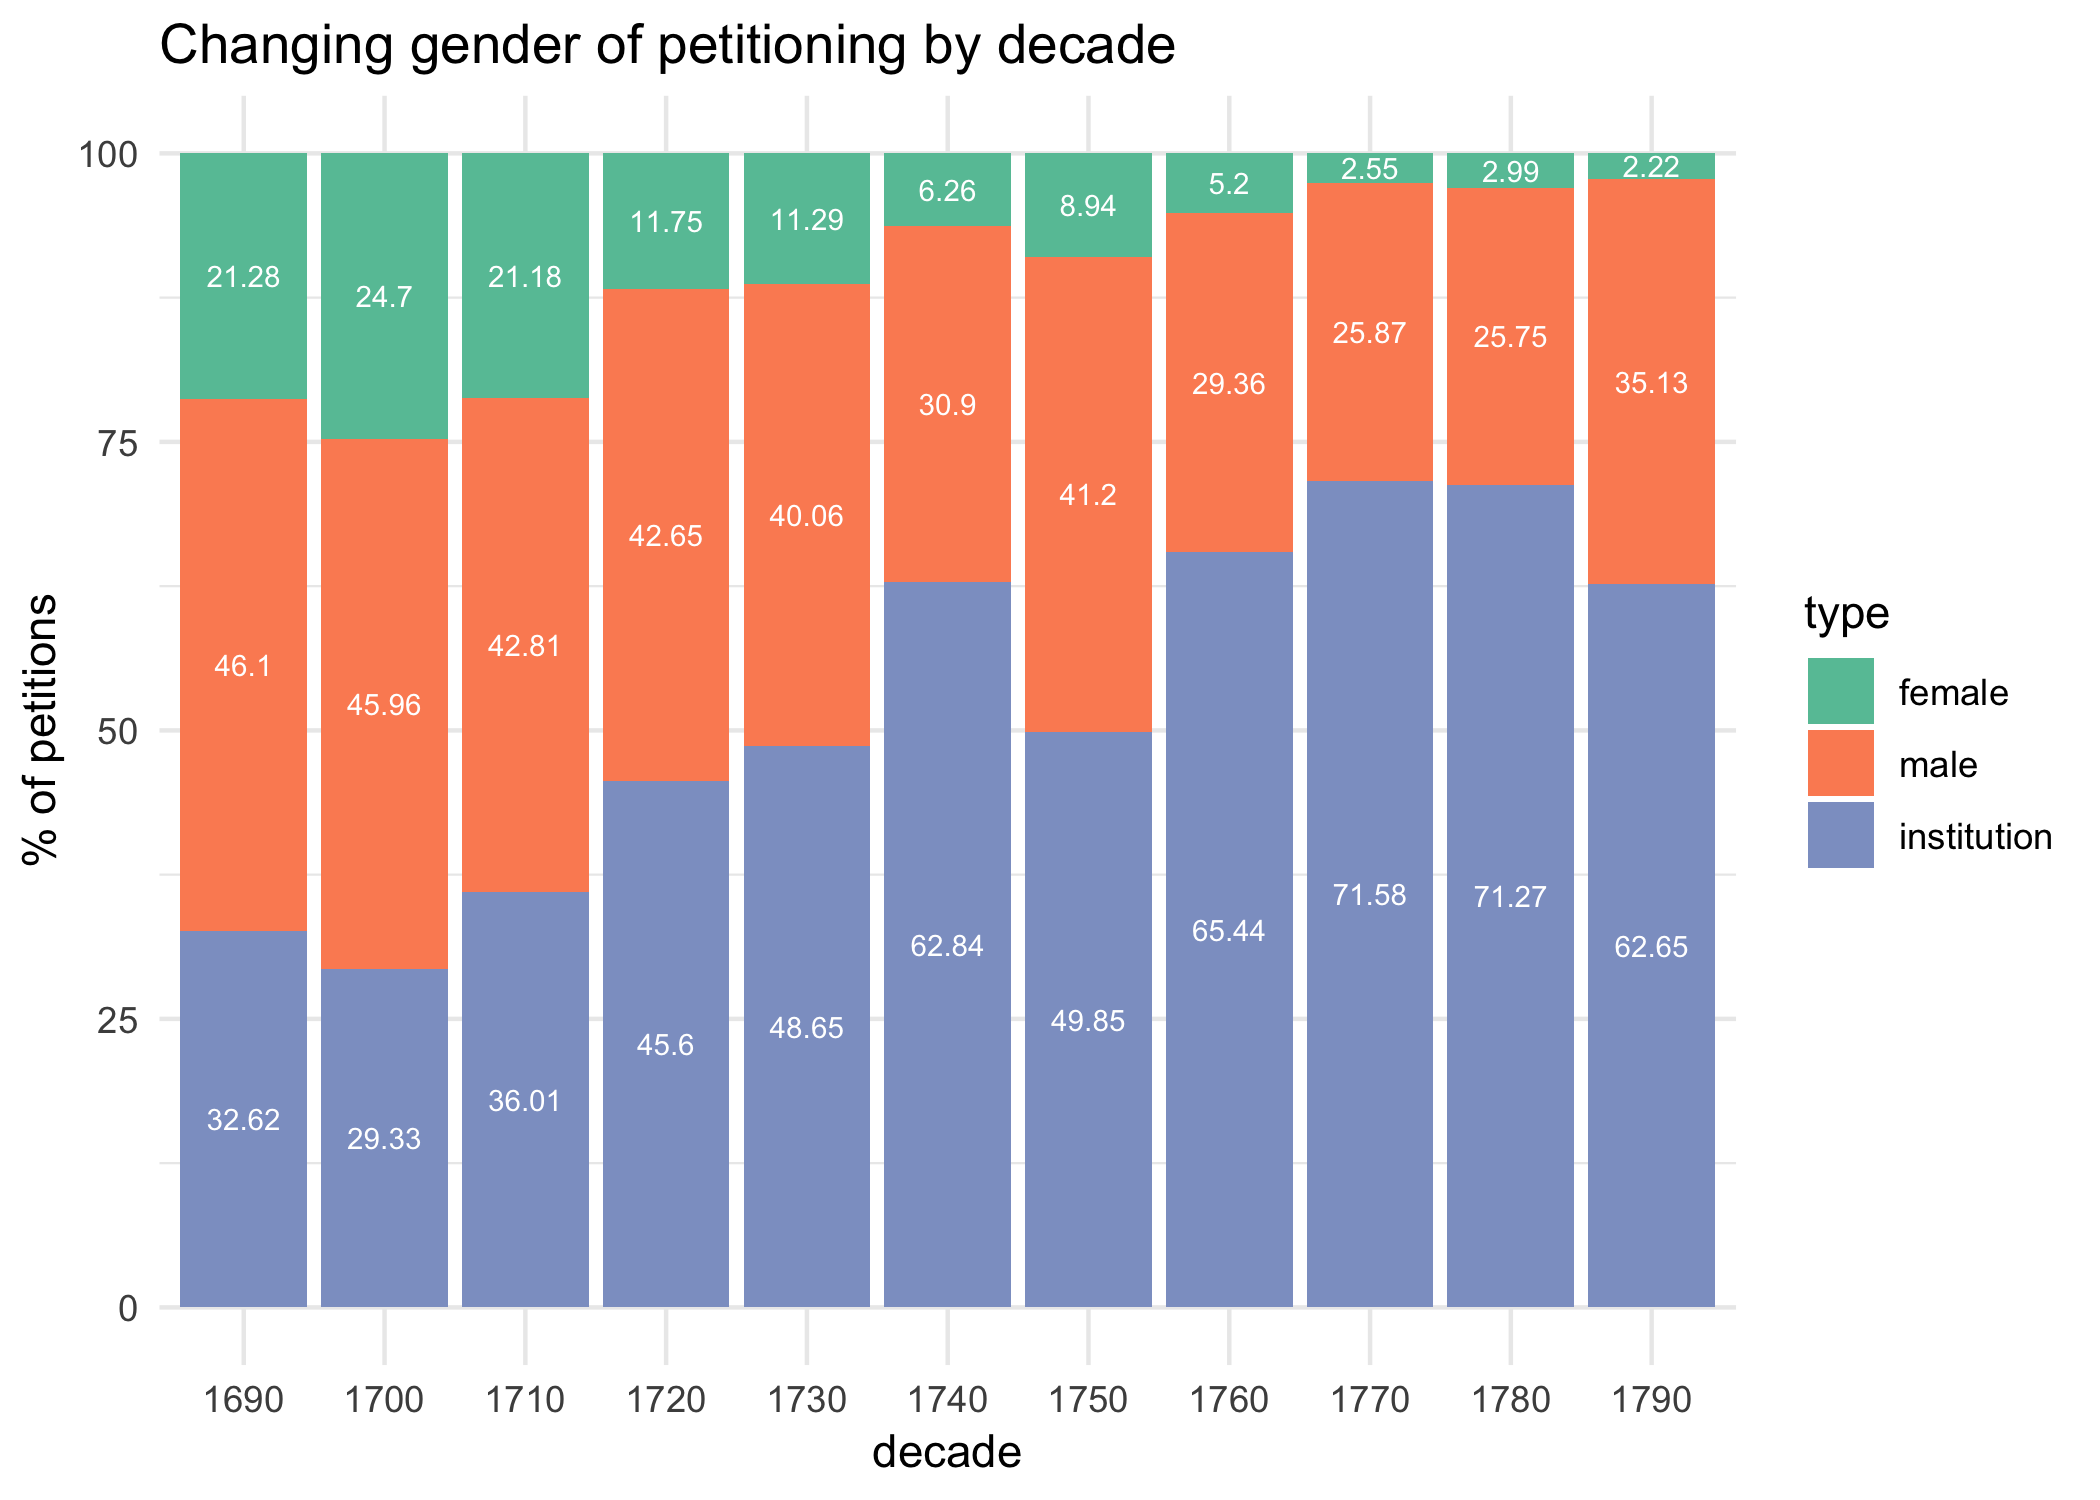 Chart showing changing gender of petitioning by decade